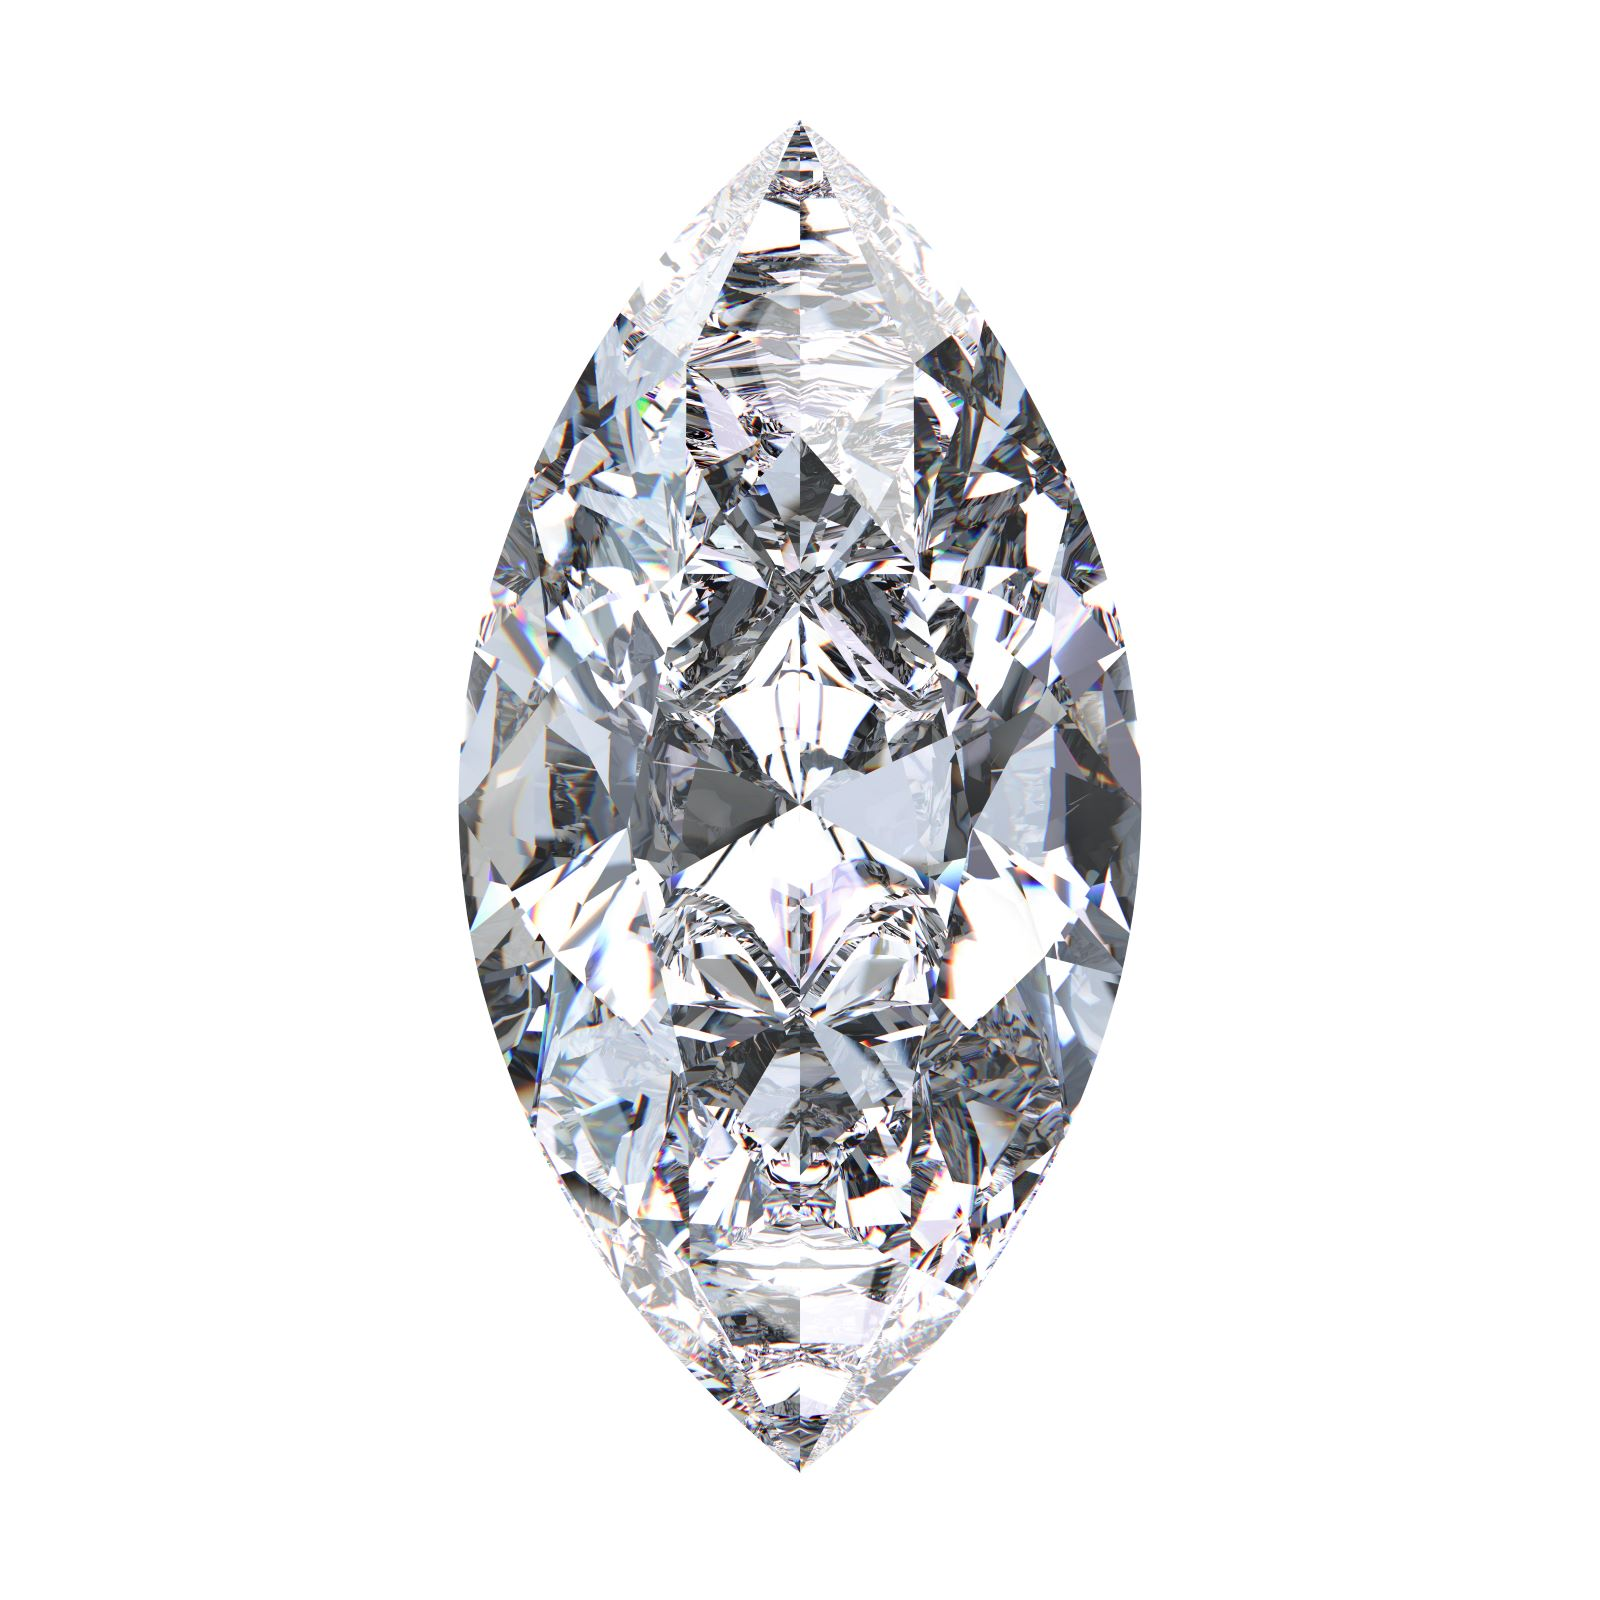 Diamond with marquise cut